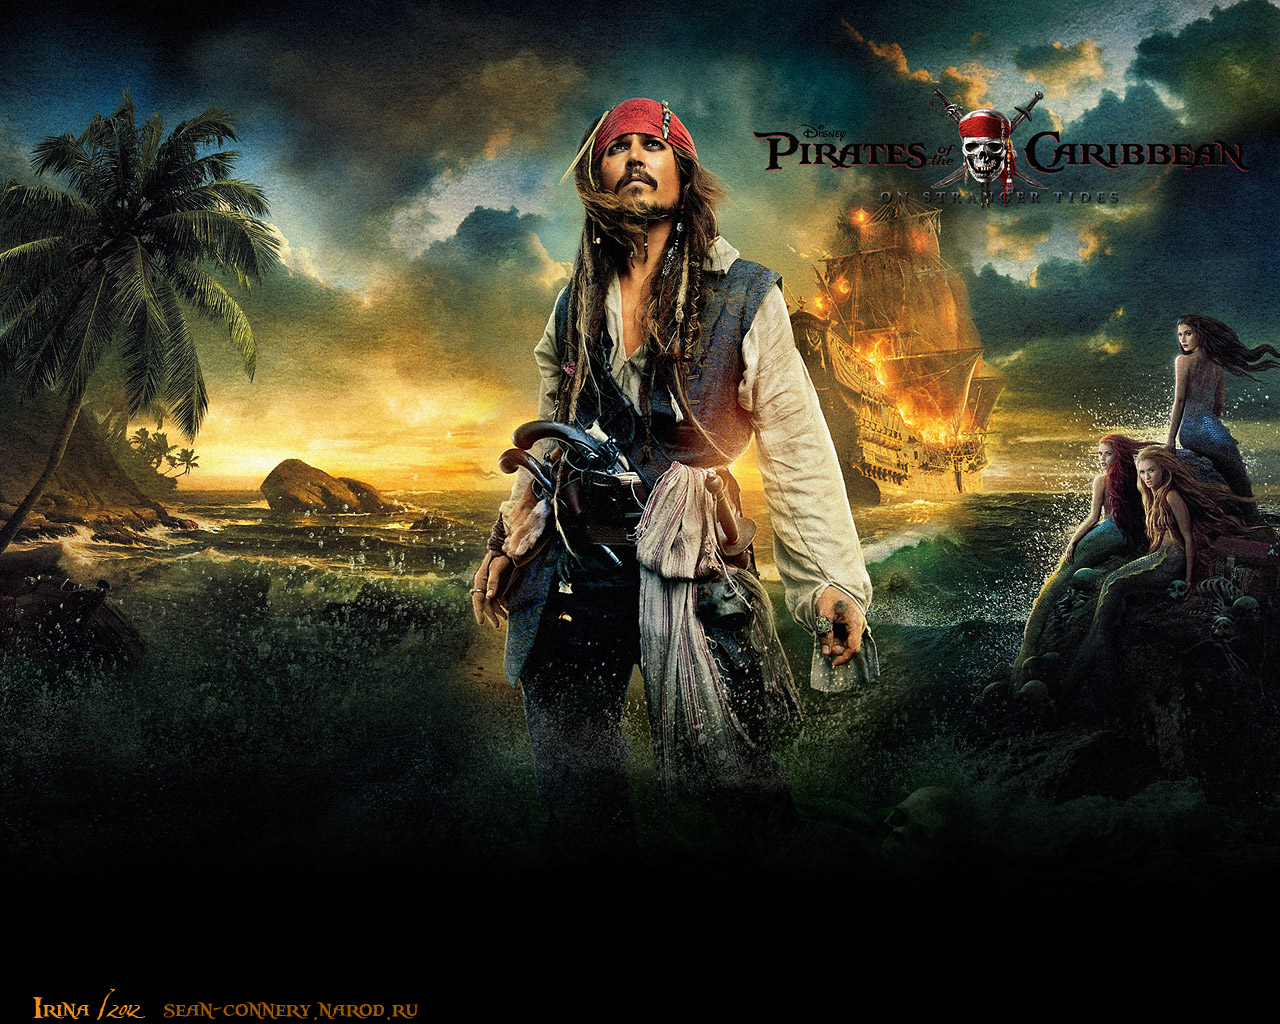 75 Pirates Of The Carribean Wallpapers On Wallpapersafari